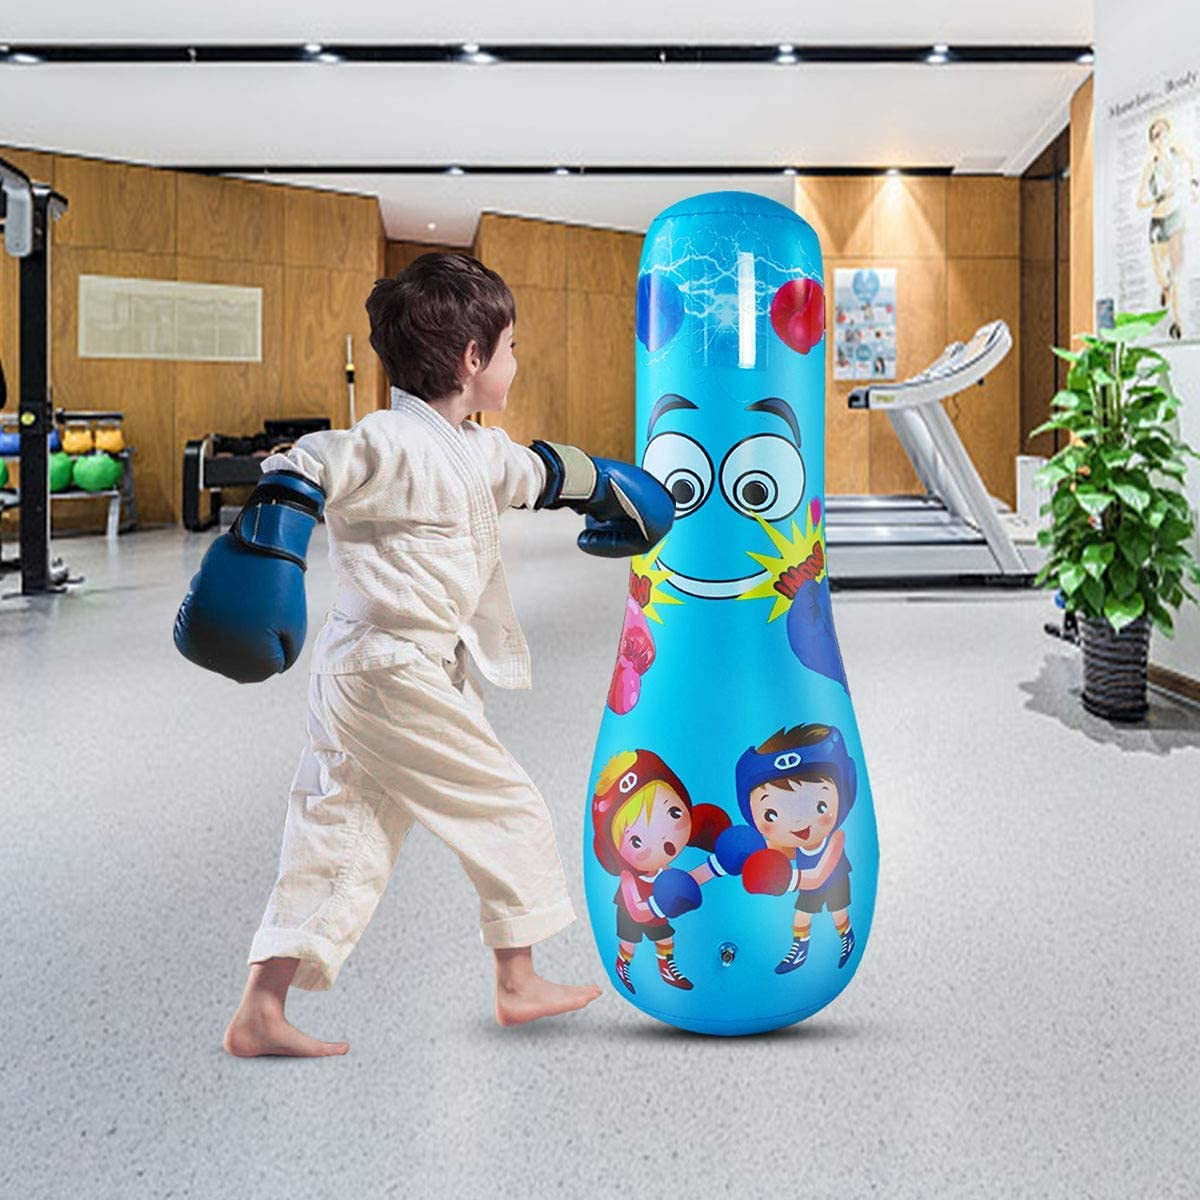 Mesa Mall SUNSHINEMALL Inflatable Punching Tower Column Direct sale of manufacturer Tumbler Bag Boxing